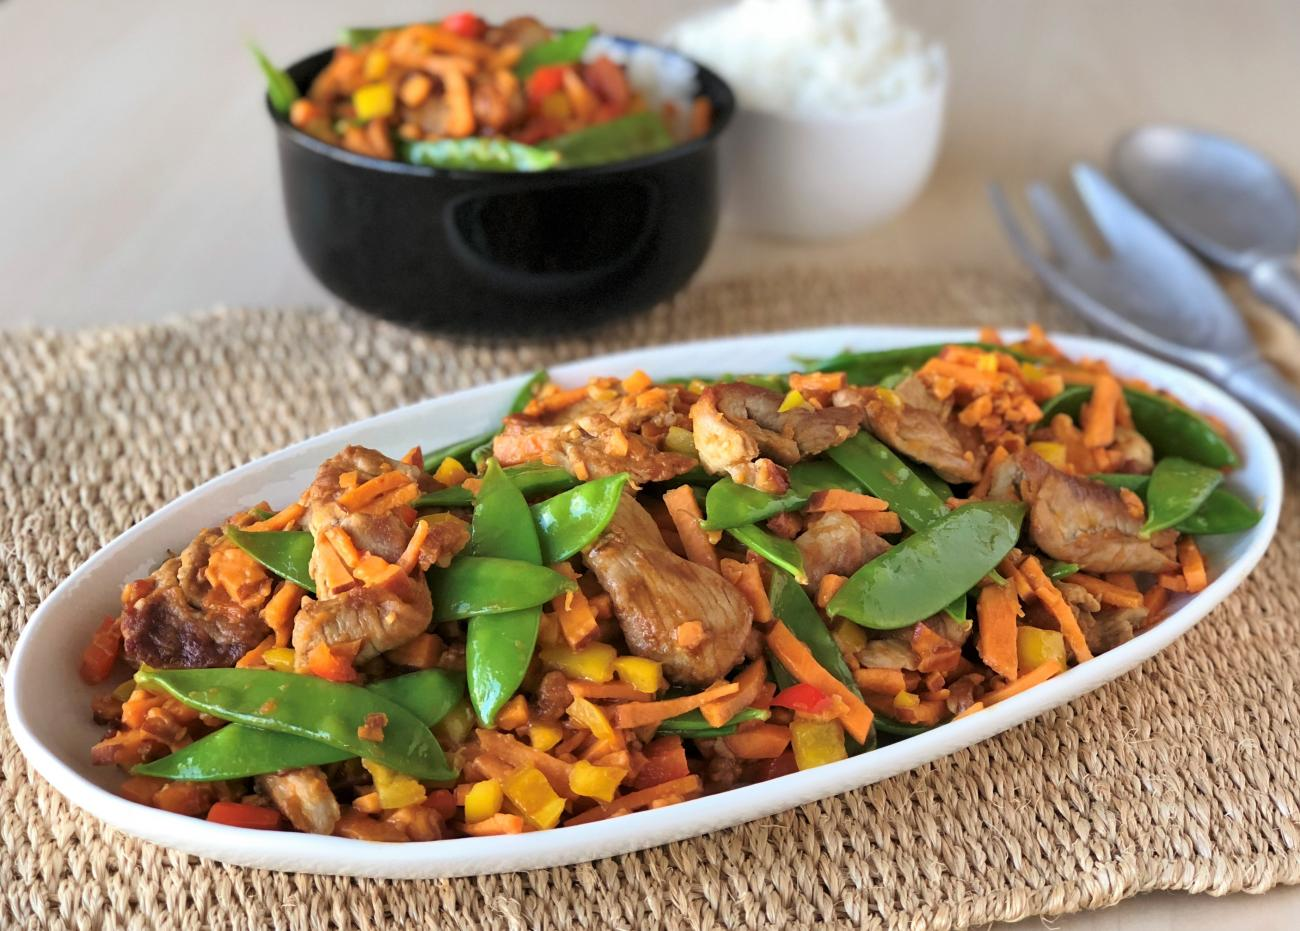 Pork and Sweet Potato Stir Fry